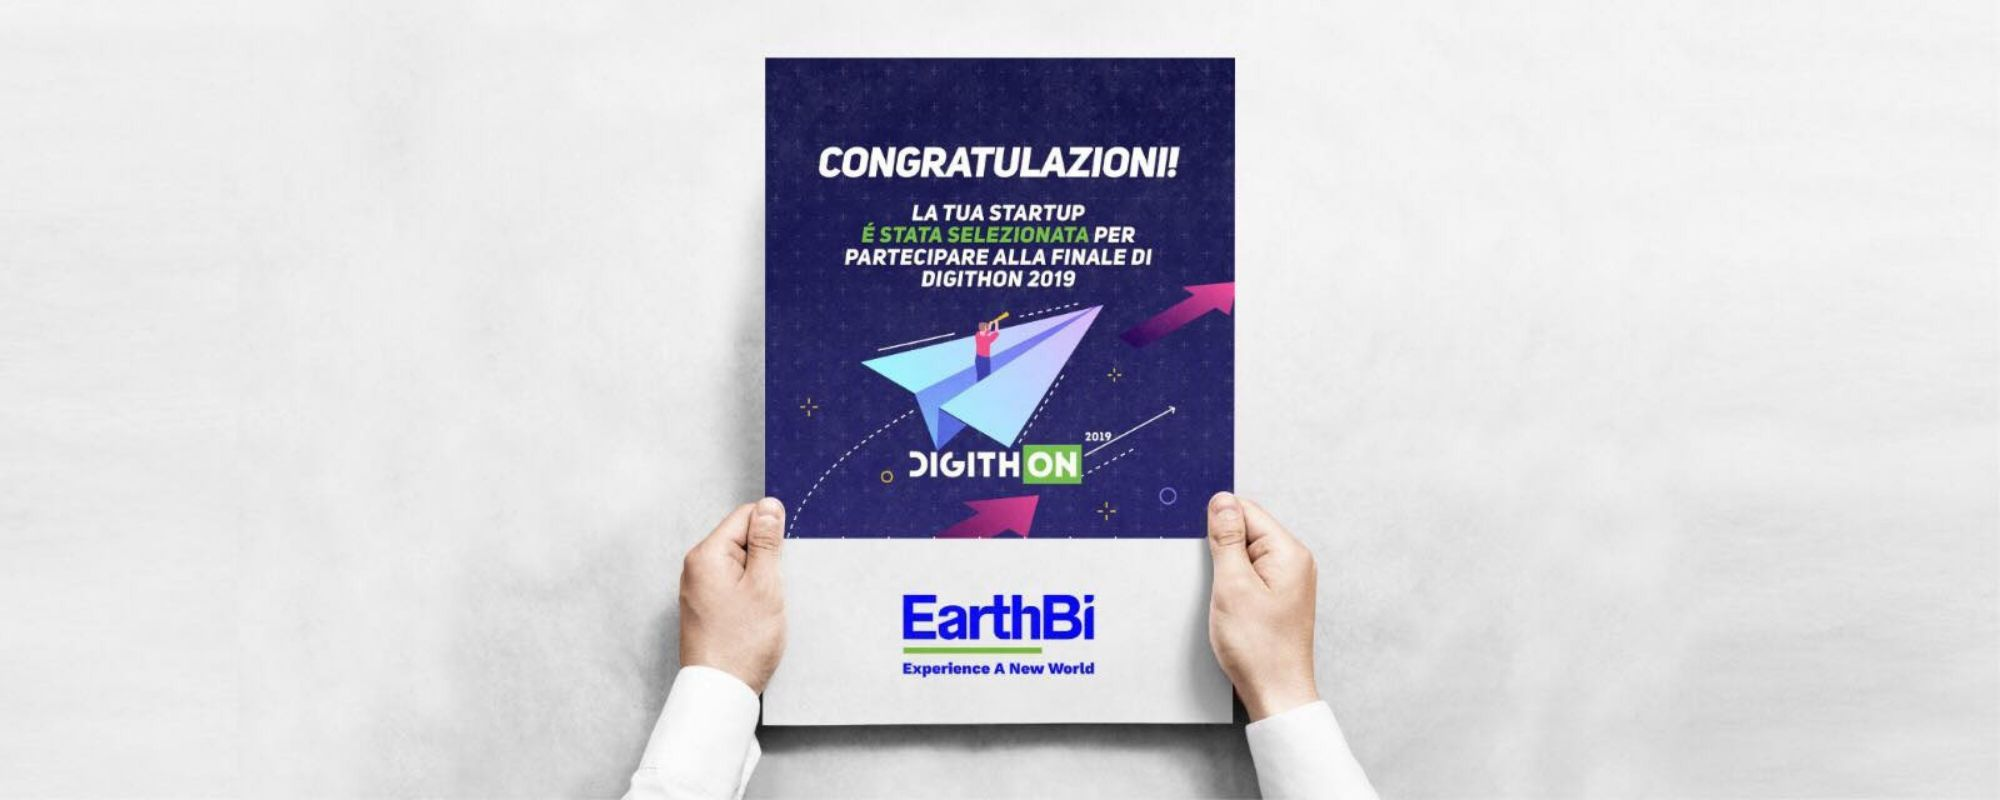 EarthBi finalist at DigithOn: the largest Italian digital marathon